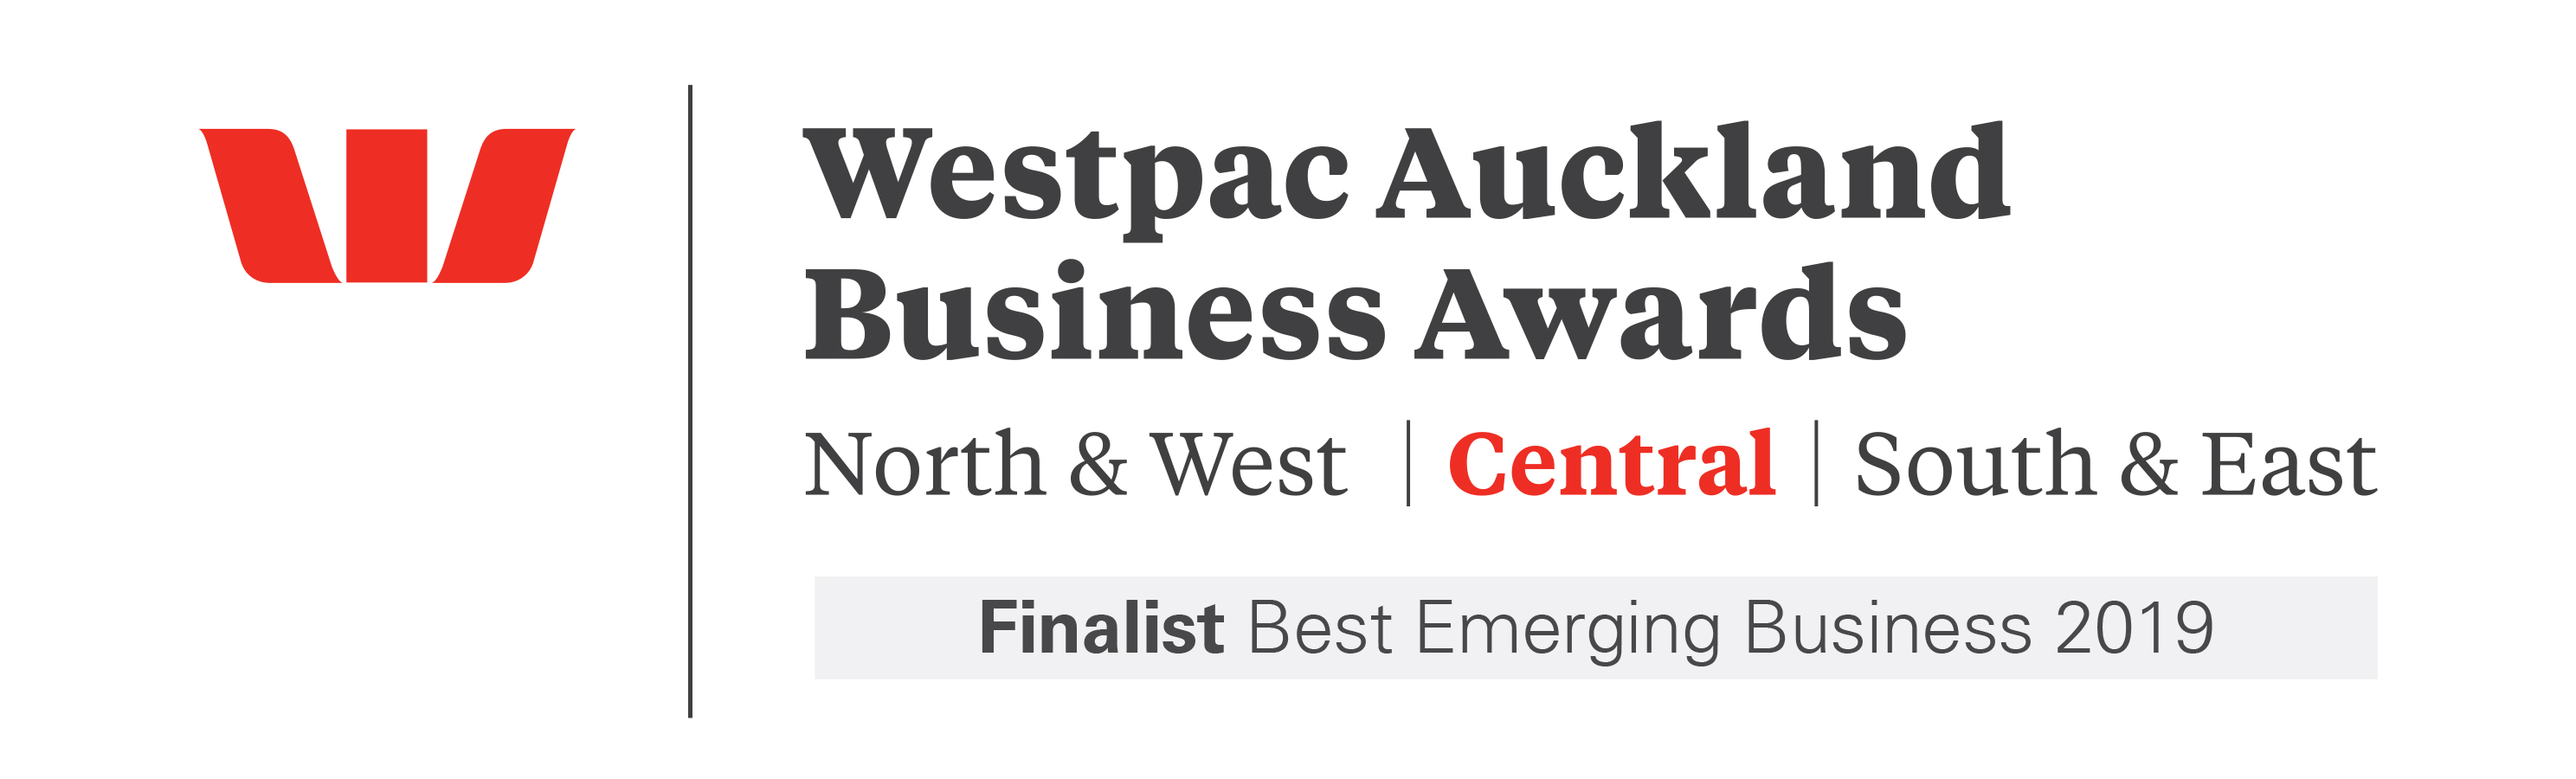 JOYN is a finalist in Westpac Auckland Business Awards Best Emerging Business Category for 2019